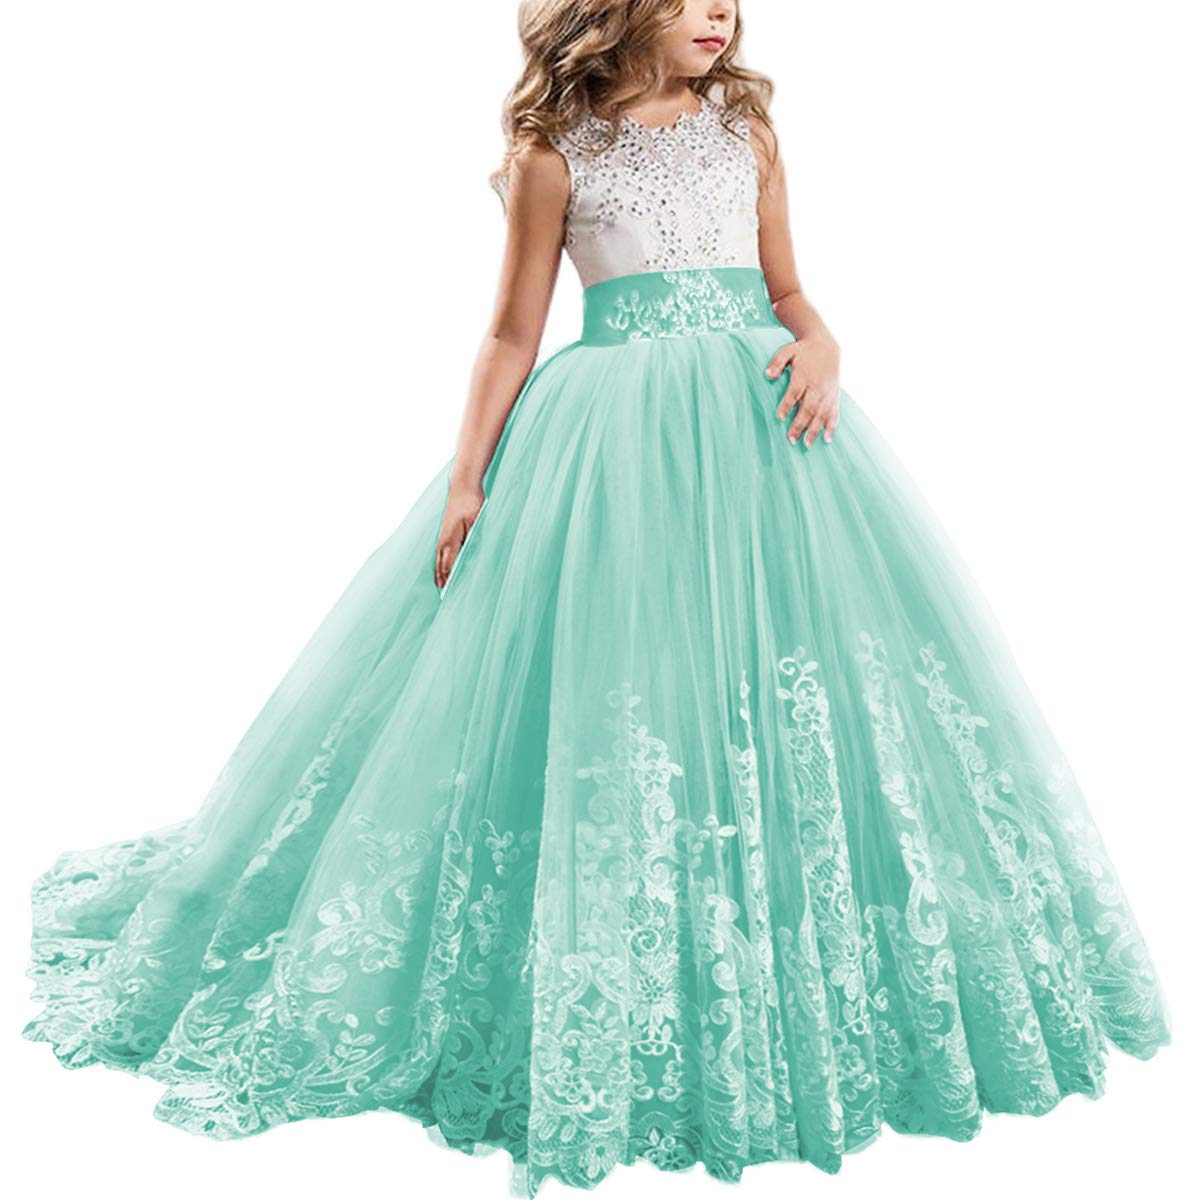 Flower Girl Dress Kids Lace Beaded Pageant Ball Maxi Gowns Long First Communion Prom Formal Birthday Dresses Turquoise 12-13 Years by IBTOM CASTLE